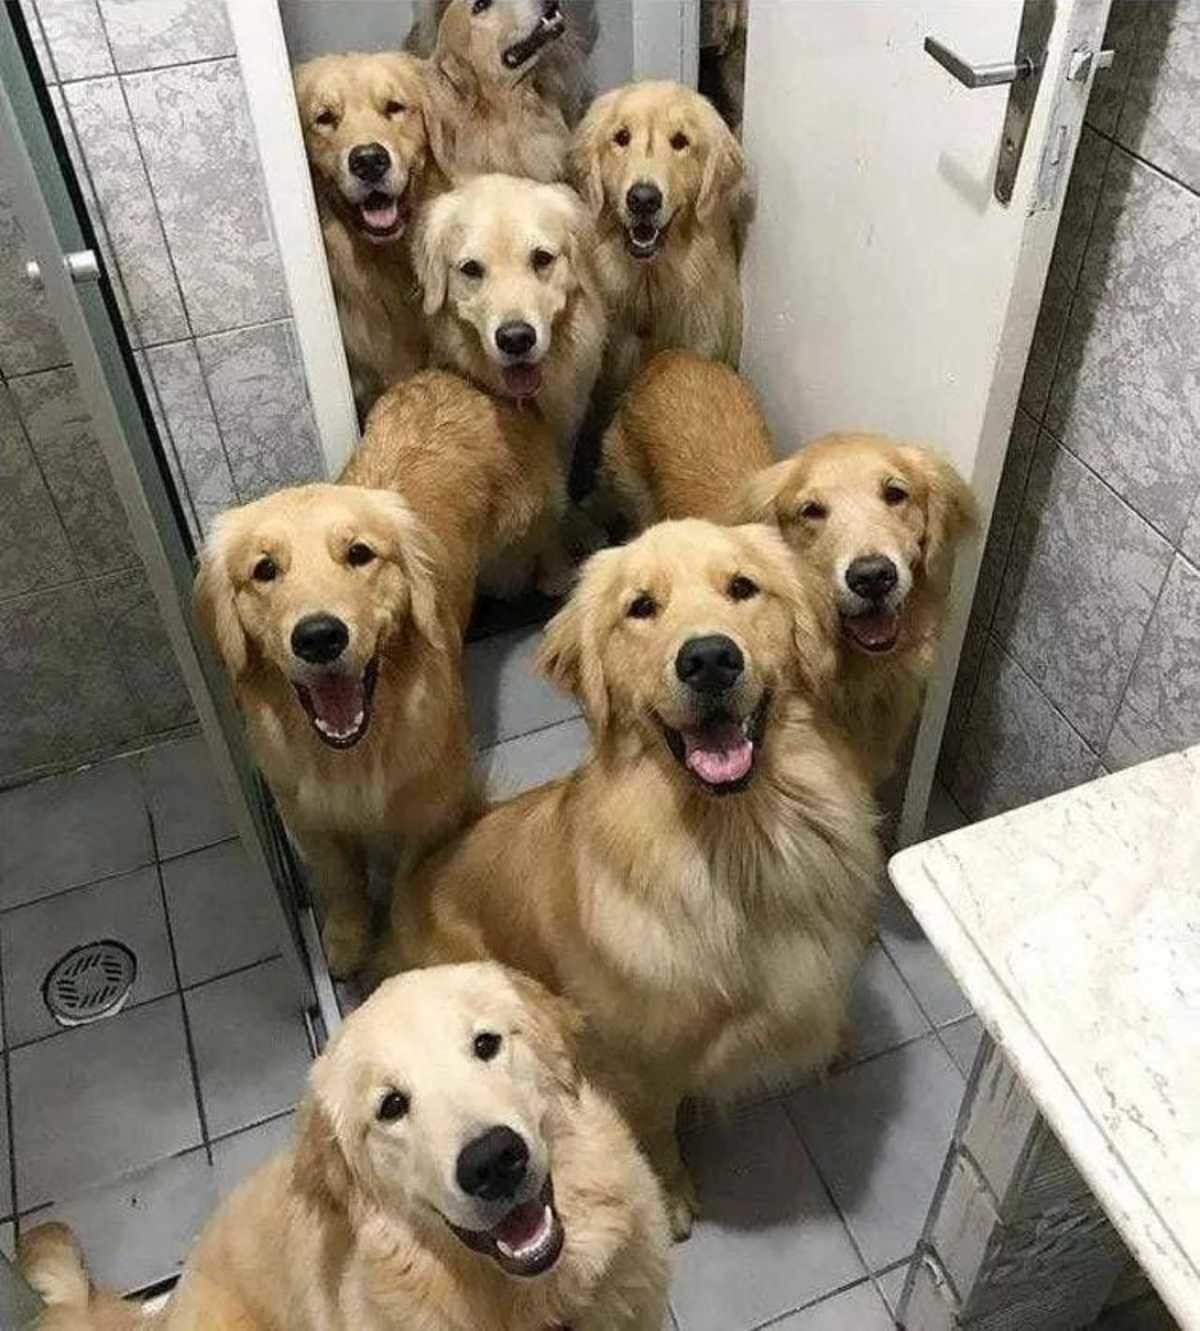 Need any help in here? :3. .. Dogs are great. So kind and sweet